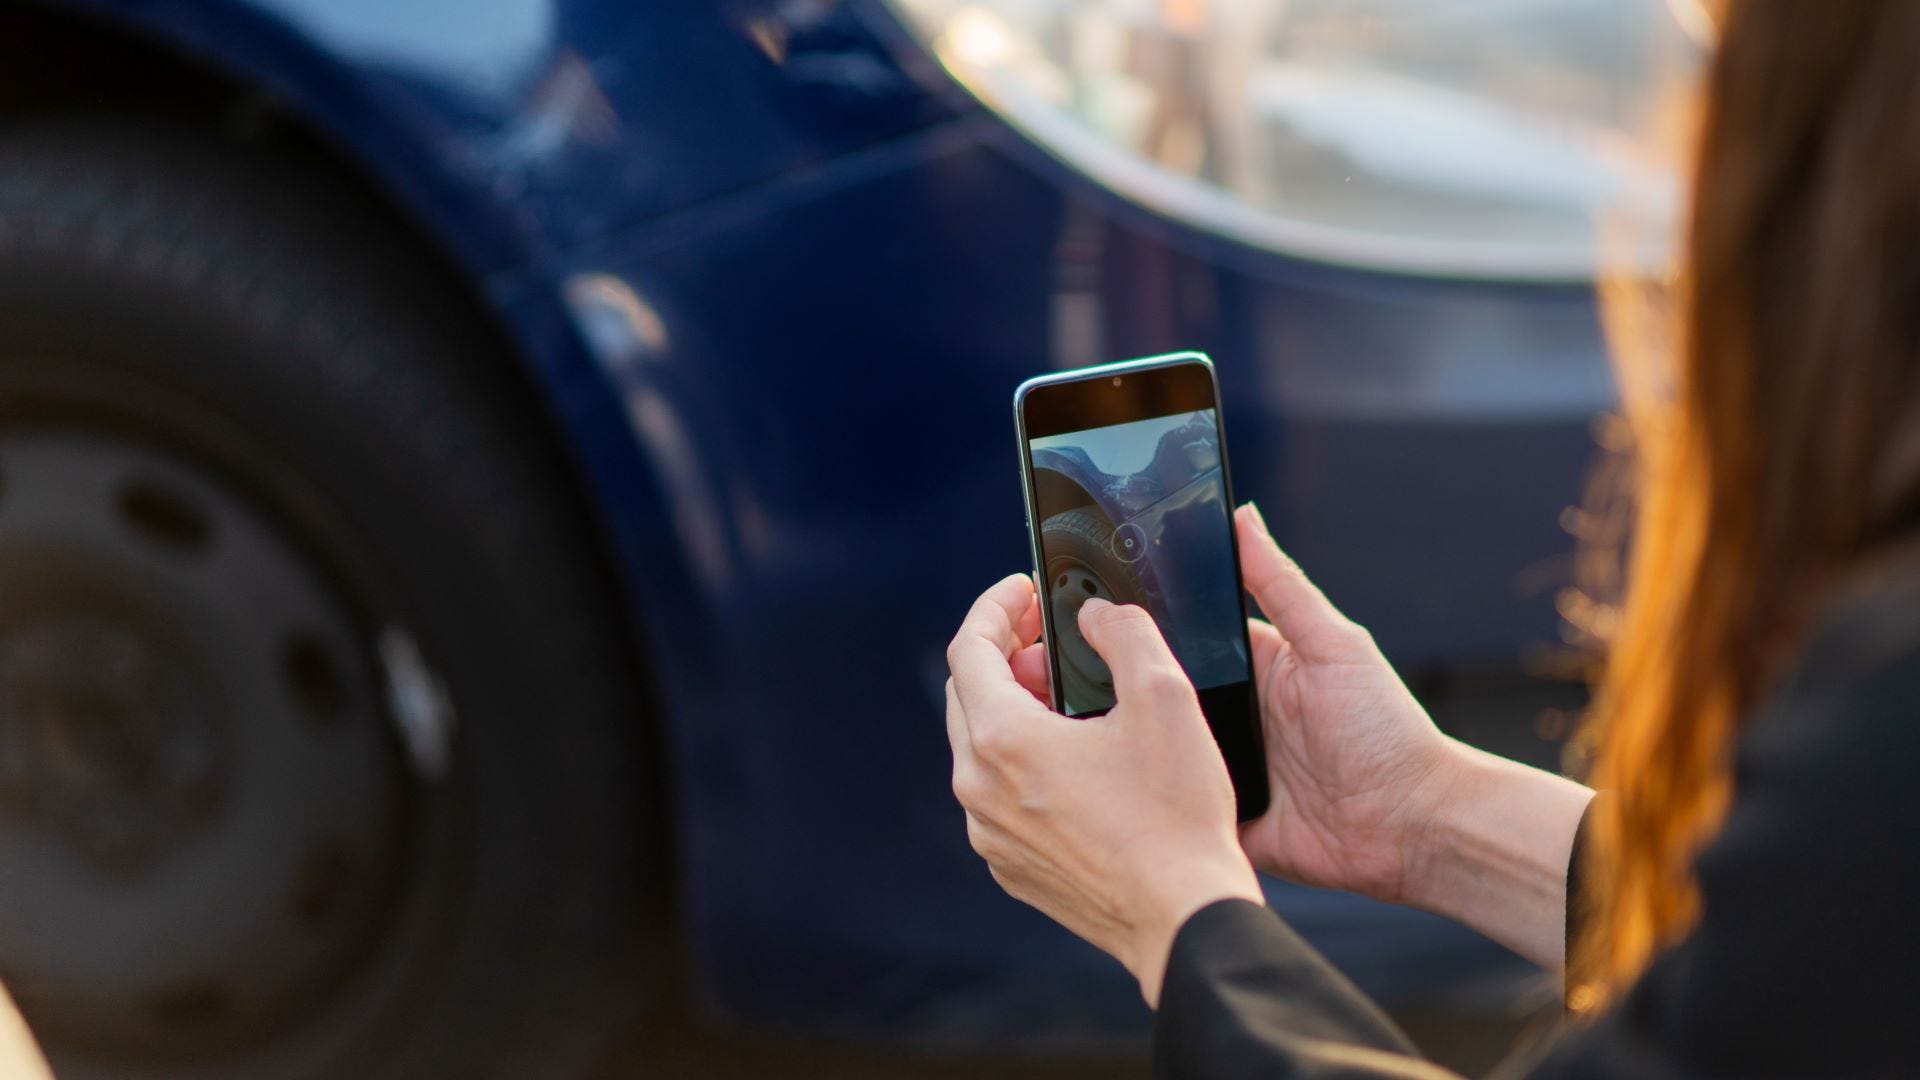 A woman taking a picture of a rental car with her phone.